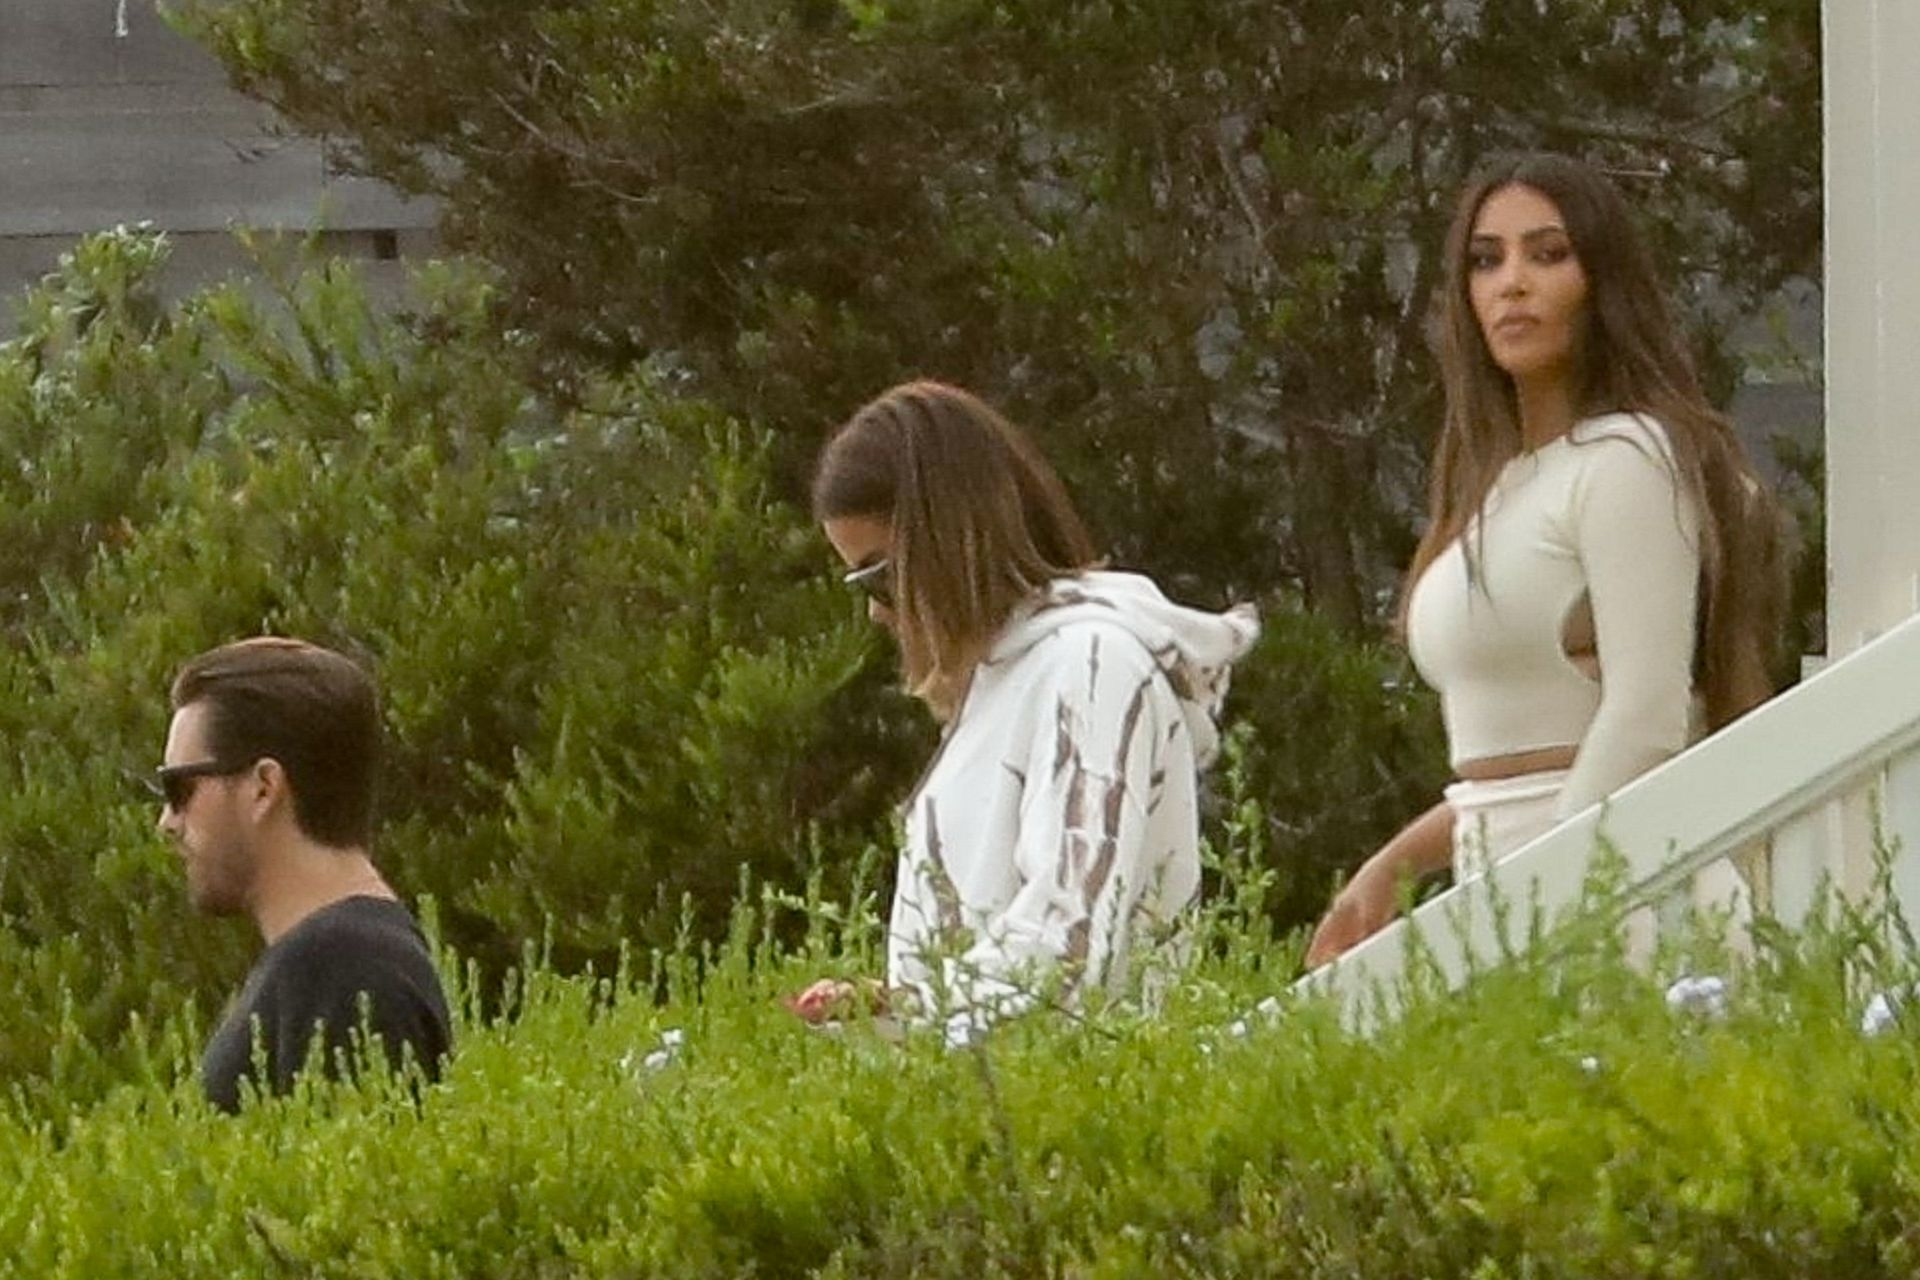 Kim kardashian in tears over kanye and scott disick admits he's a sex addict in dramatic kuwtk trailer